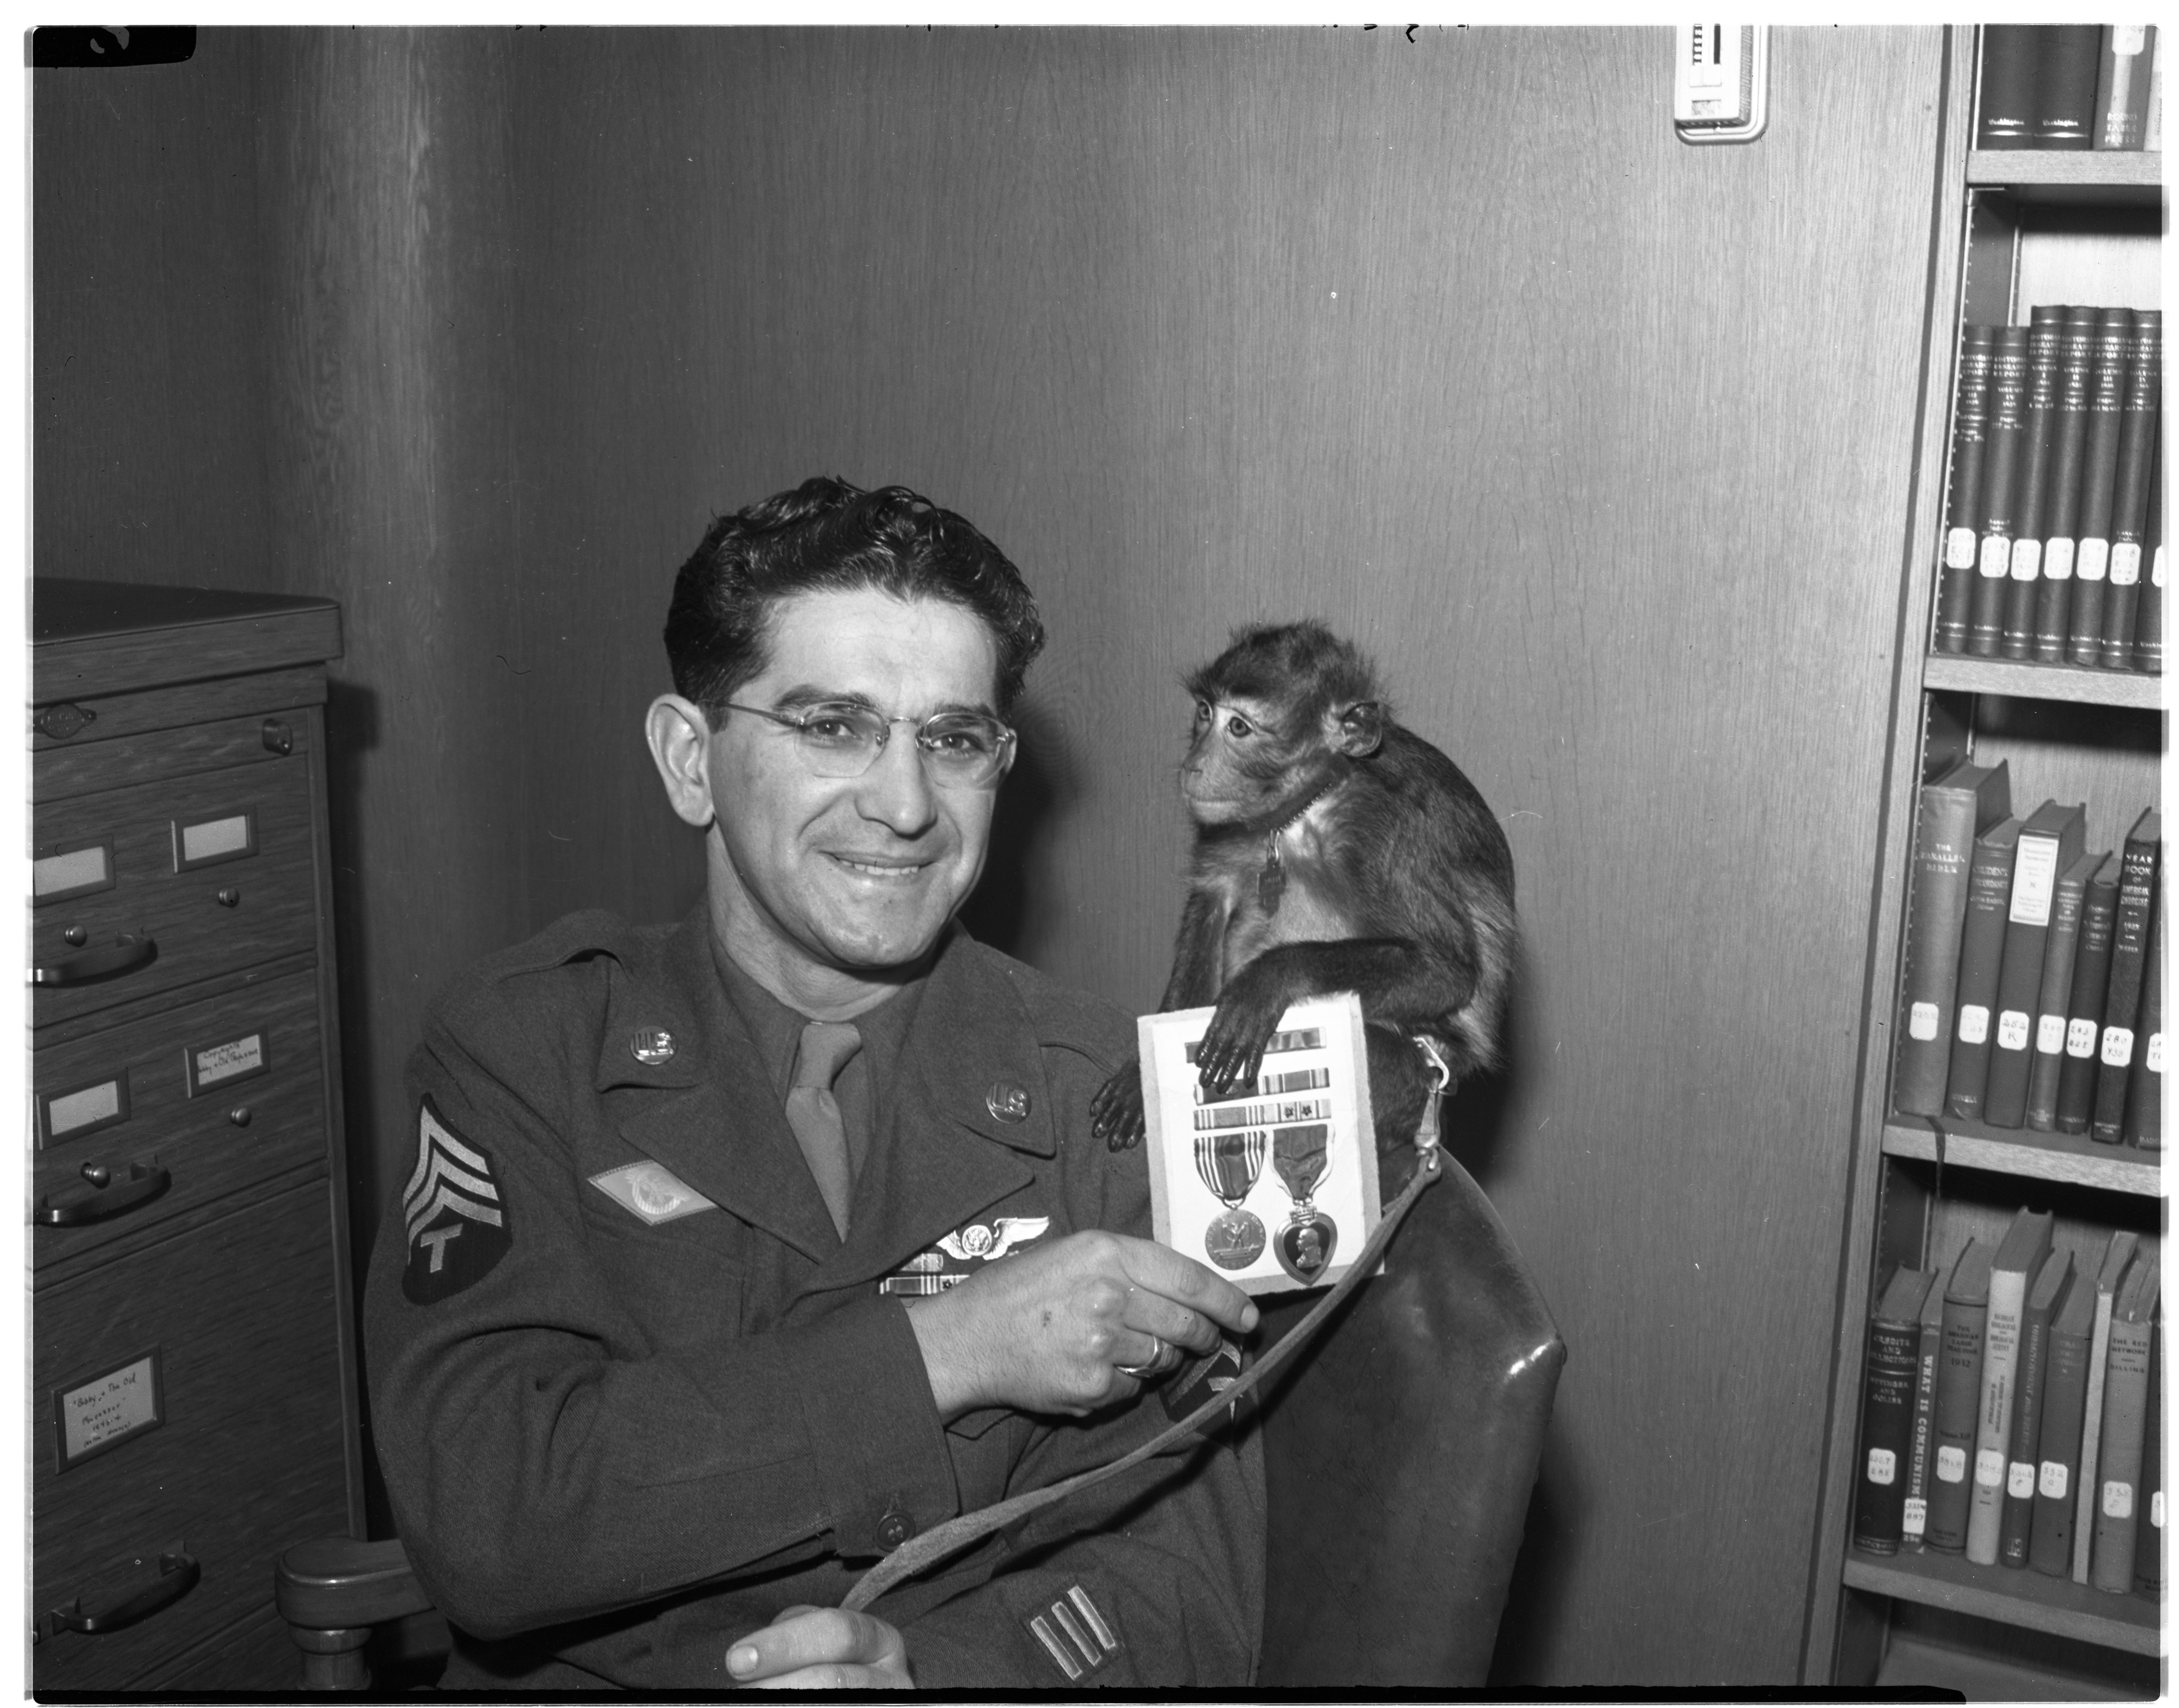 Sgt. Anthony V. Grammatico With First Sgt. Pat P. Pat, February 1946 image